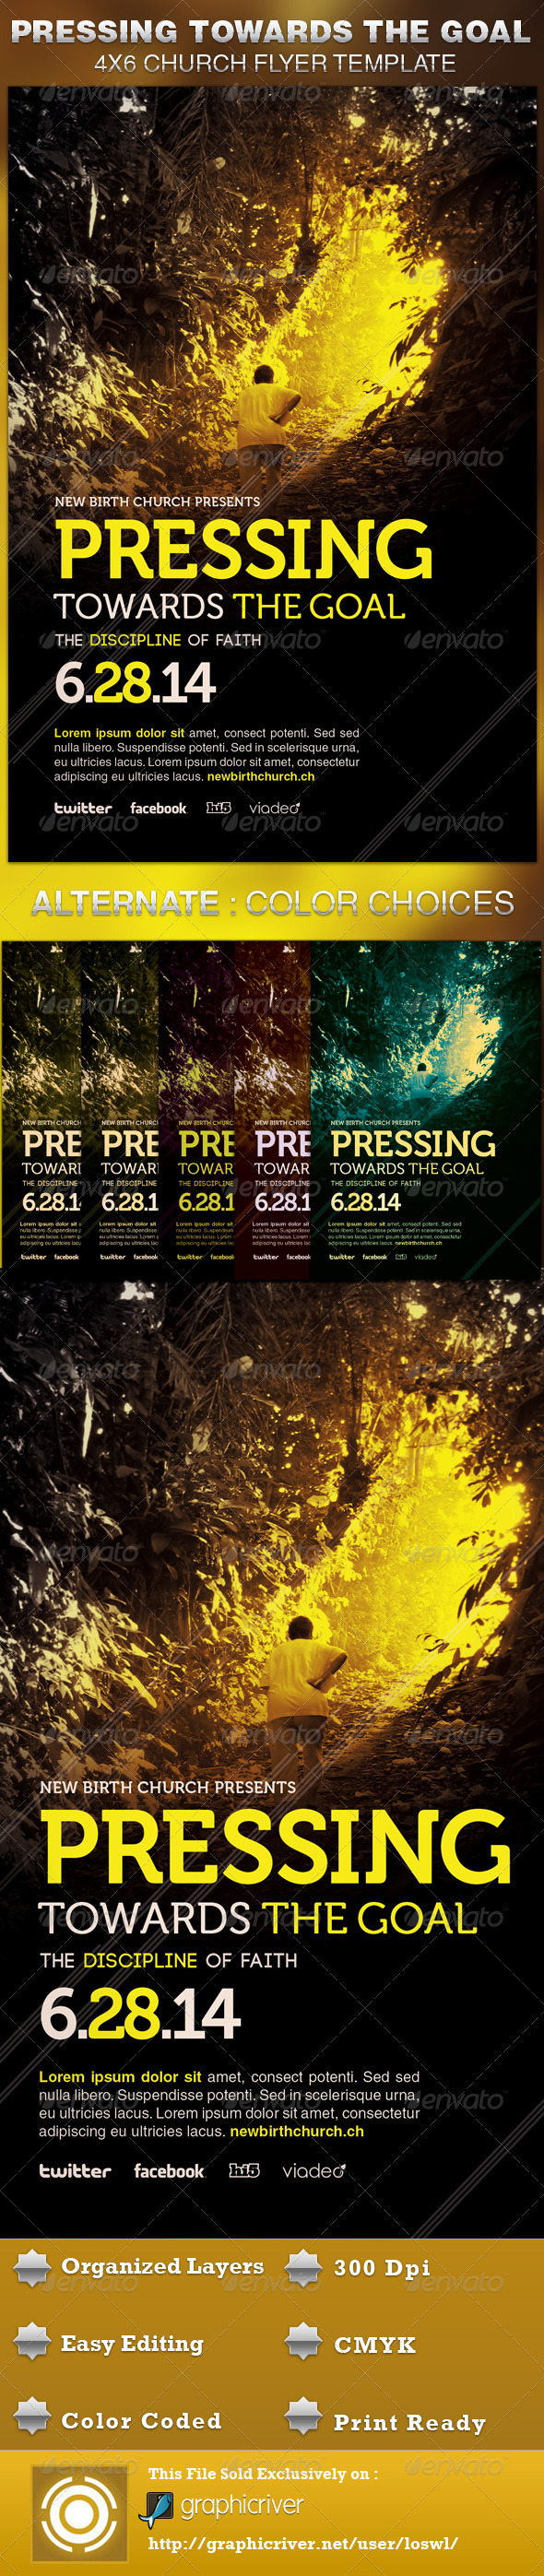 GraphicRiver Pressing Towards the Goal Church Flyer Template 5093359